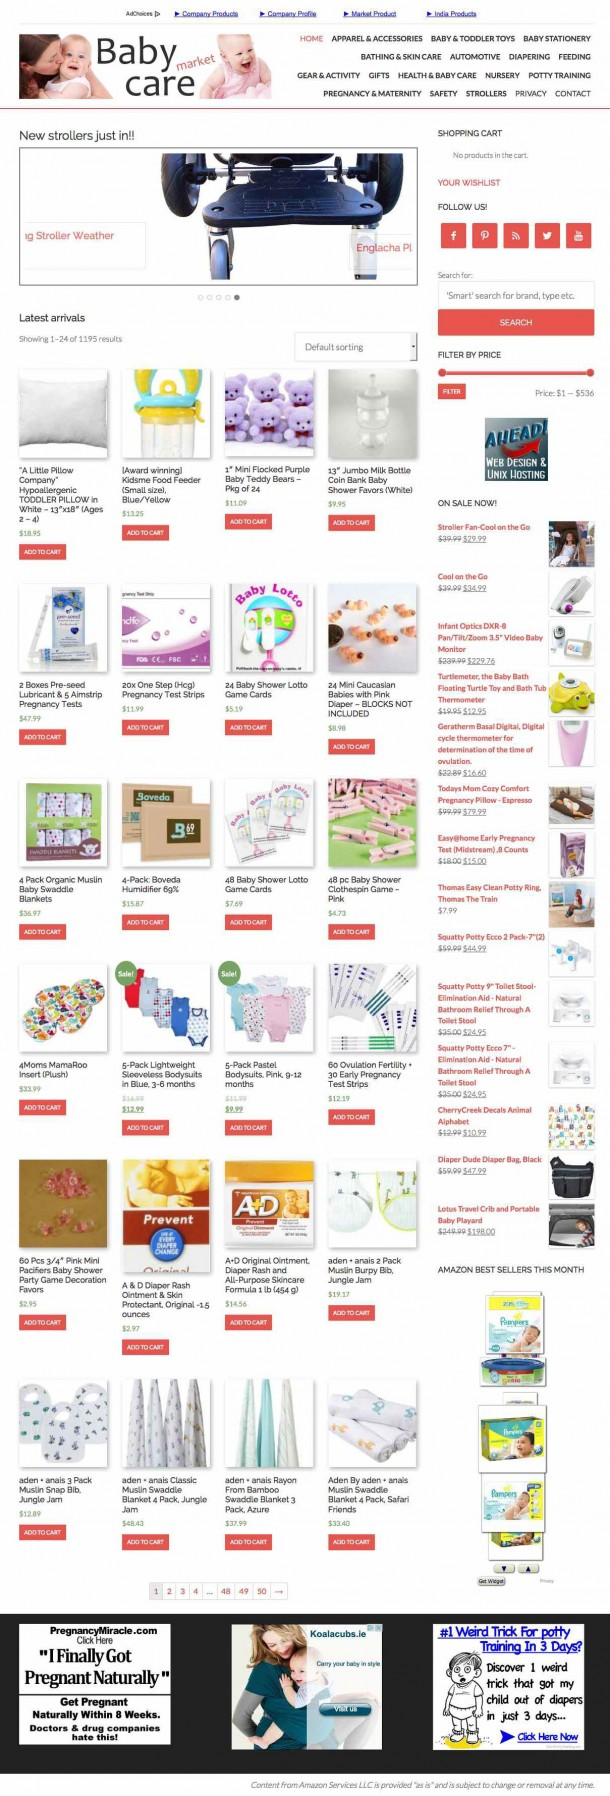 Baby_care_market_Online_shopping_from_a_huge_selection_of_the_best_baby_products